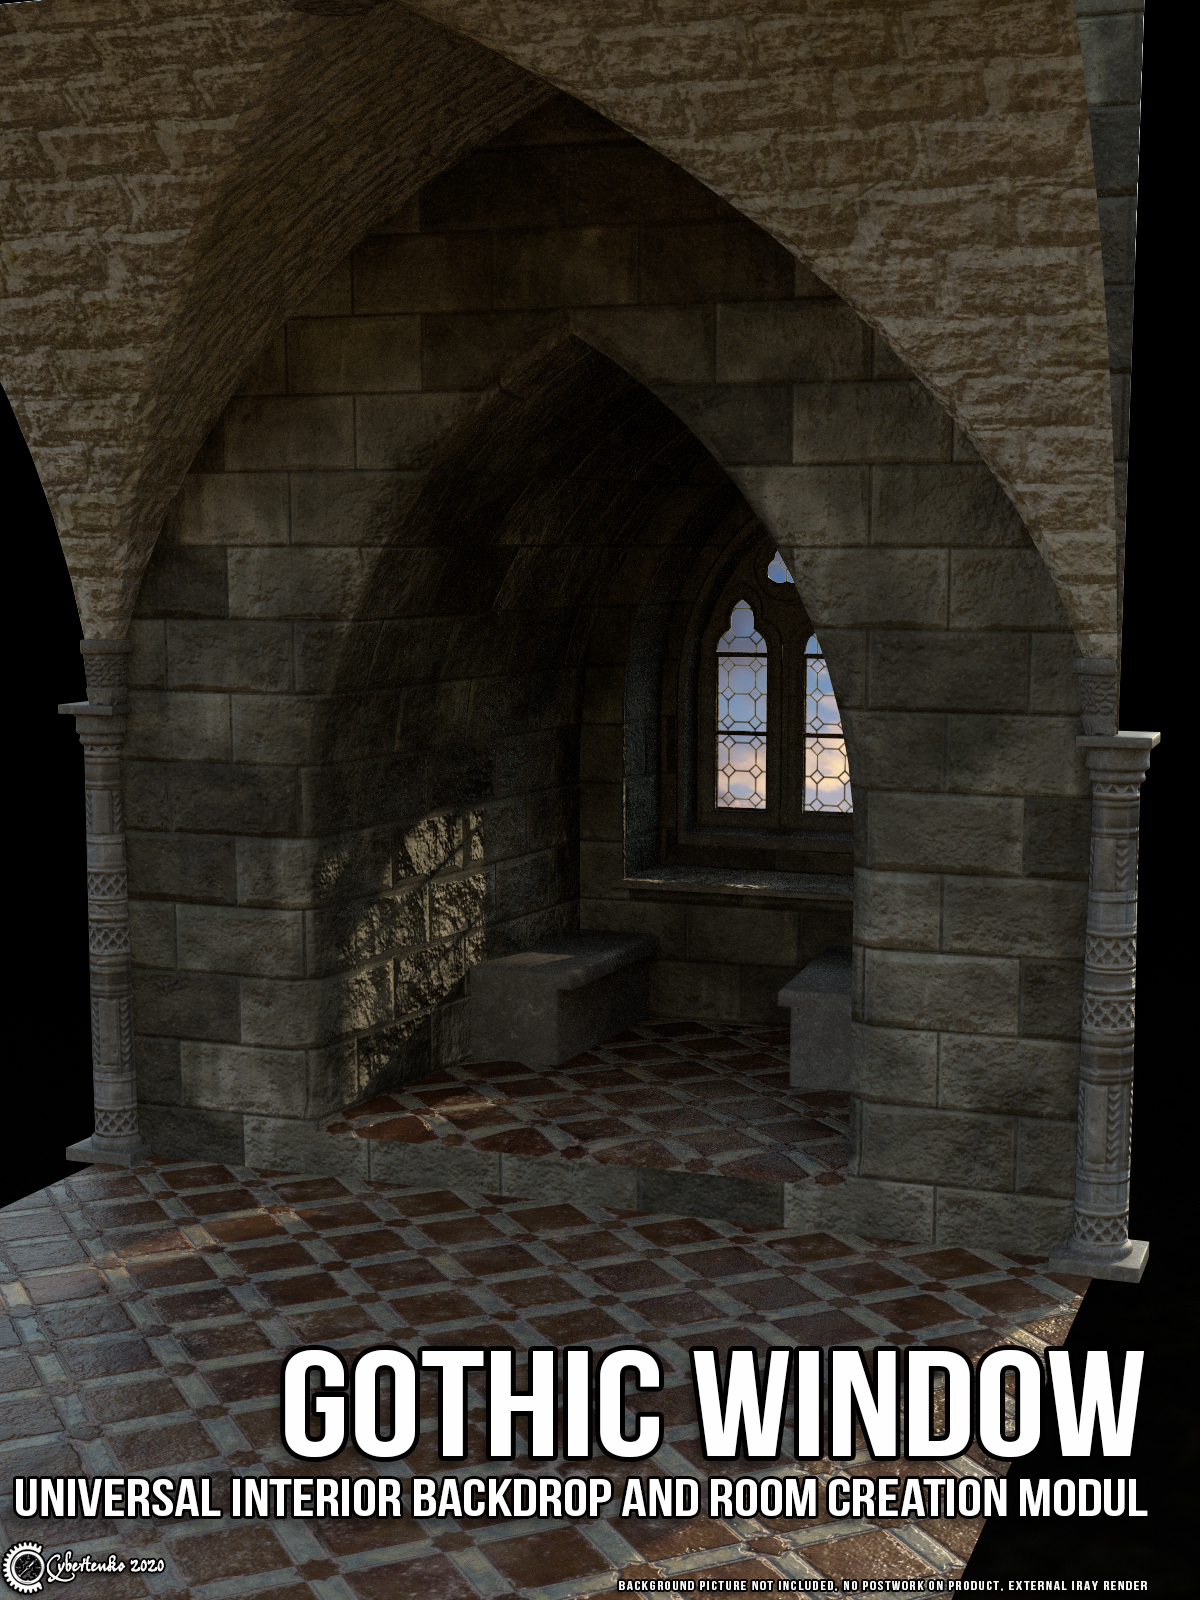 Gothic Window by Cybertenko